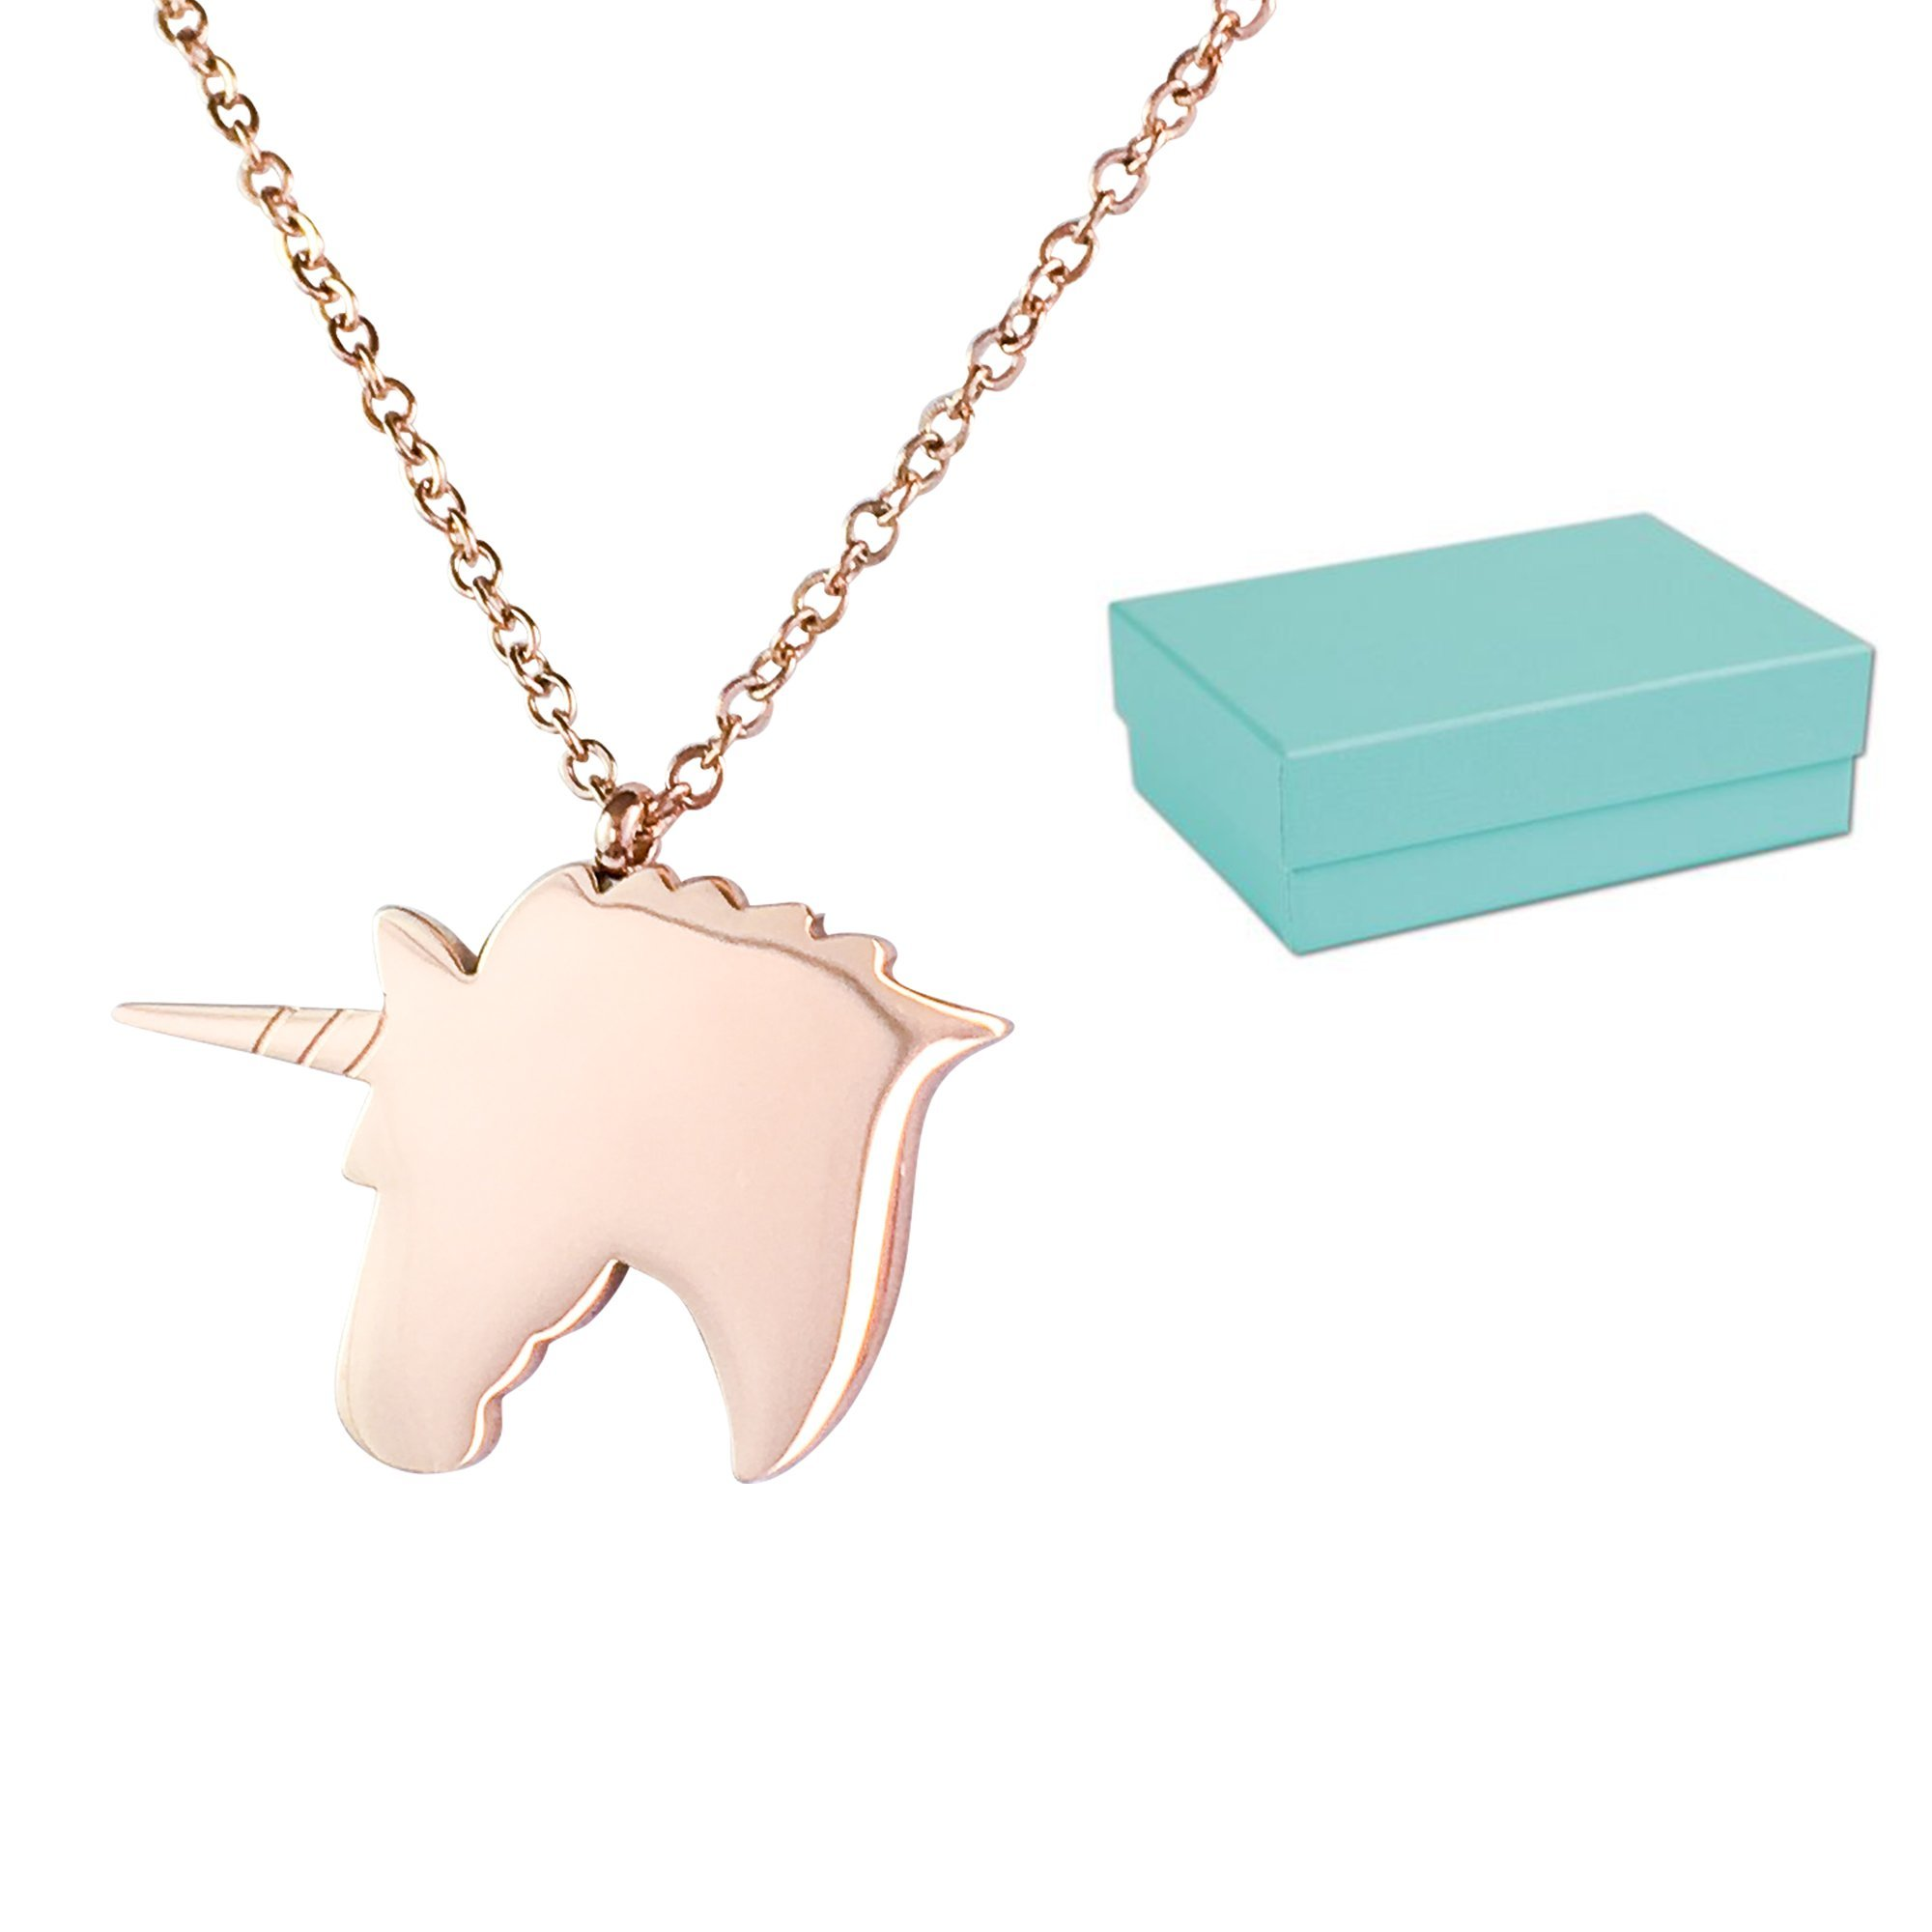 Blu Lily Unicorn Necklace for Girls, Women, Kids, Rose Gold Plated Stainless Steel w/Gift Box (Rose Gold)